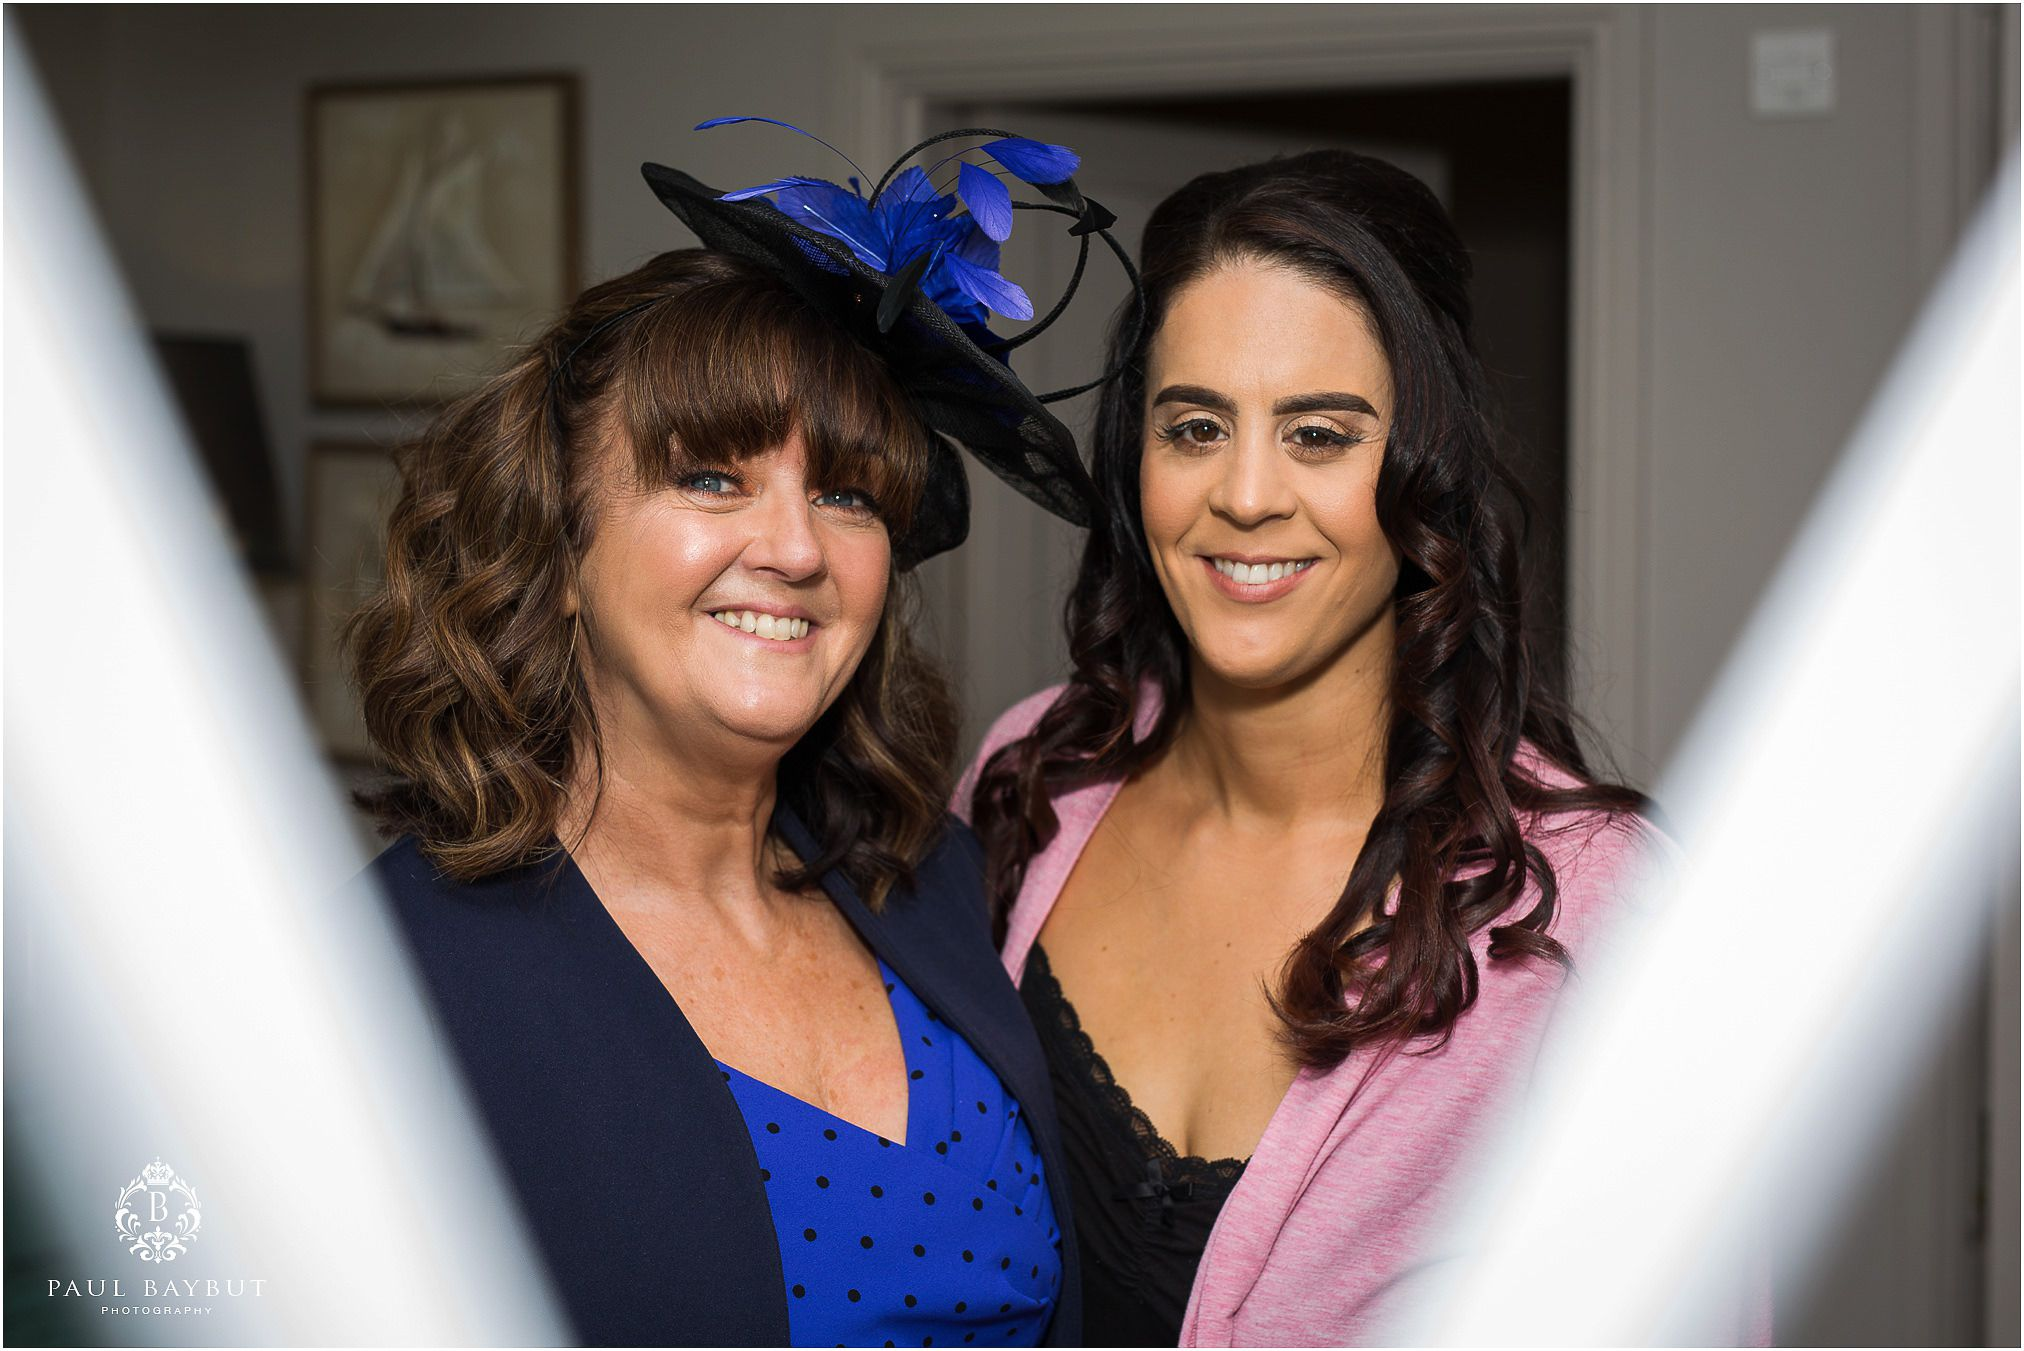 Mother and daughter smile together in the mirror at a wedding at Abbey House in Cumbria